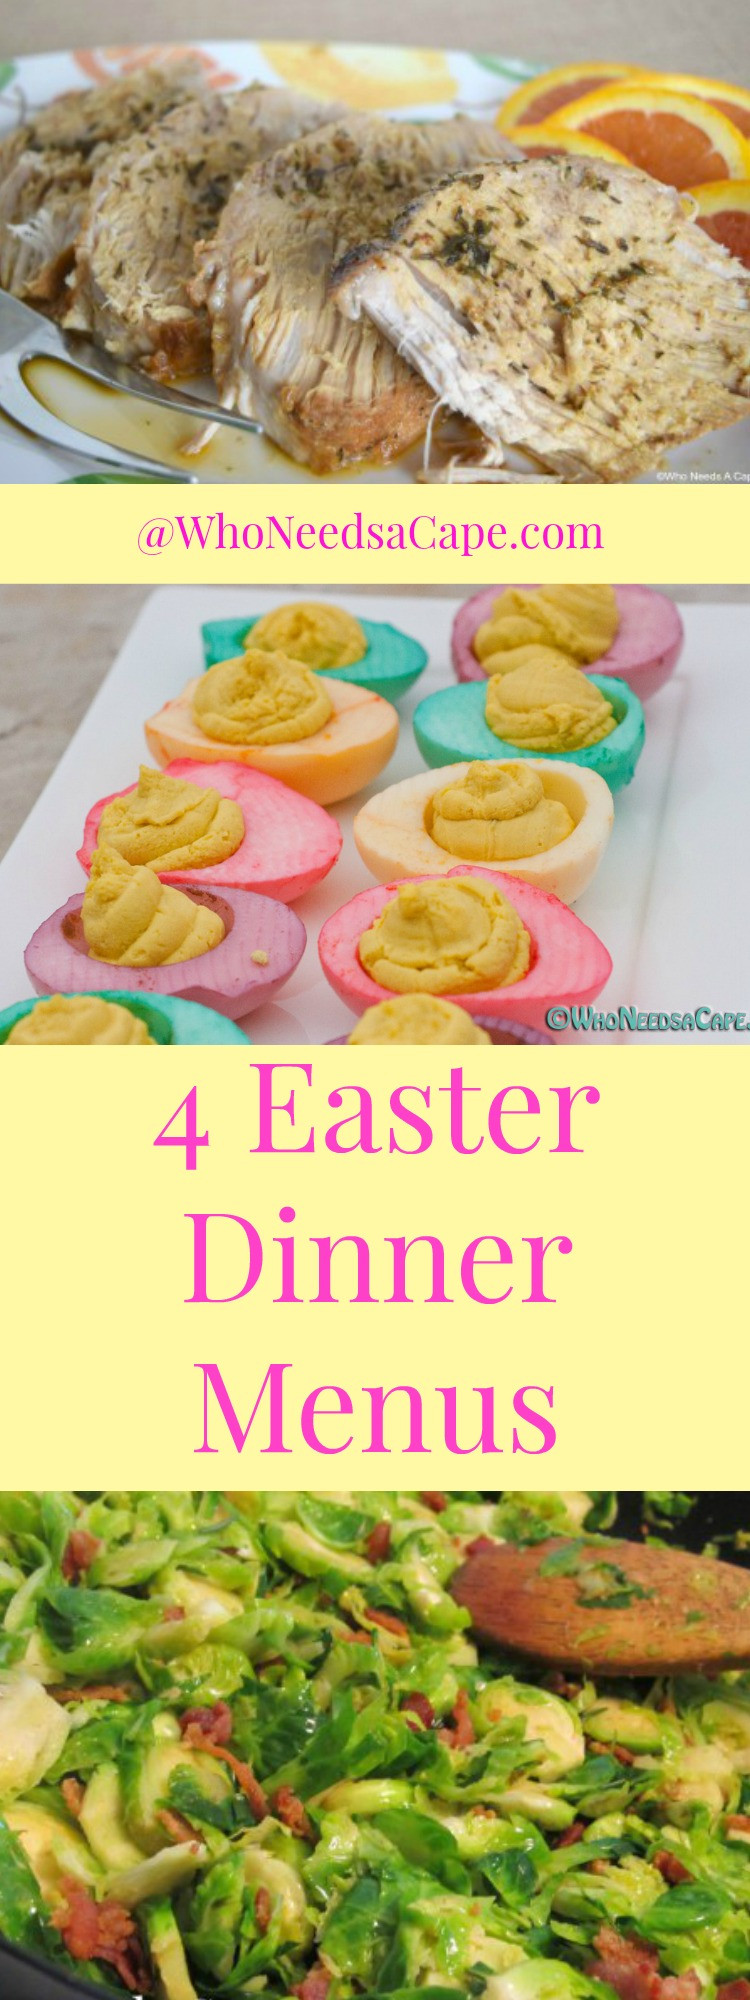 Menu For Easter Dinner  Easter Dinner Menus Who Needs A Cape